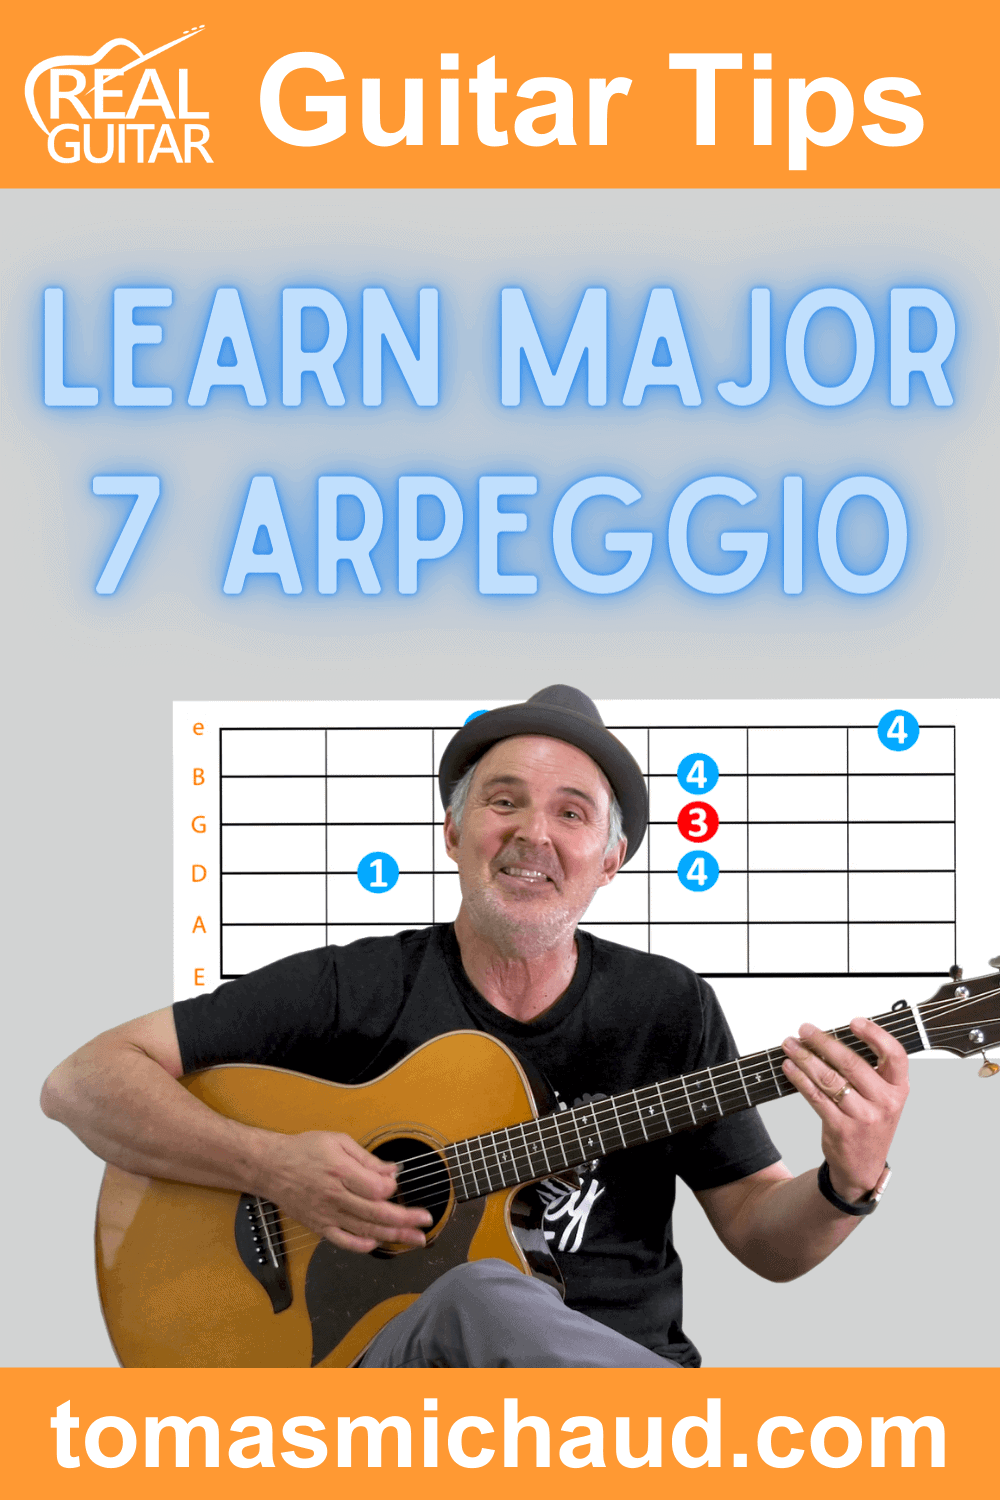 Learn Major 7 Arpeggio